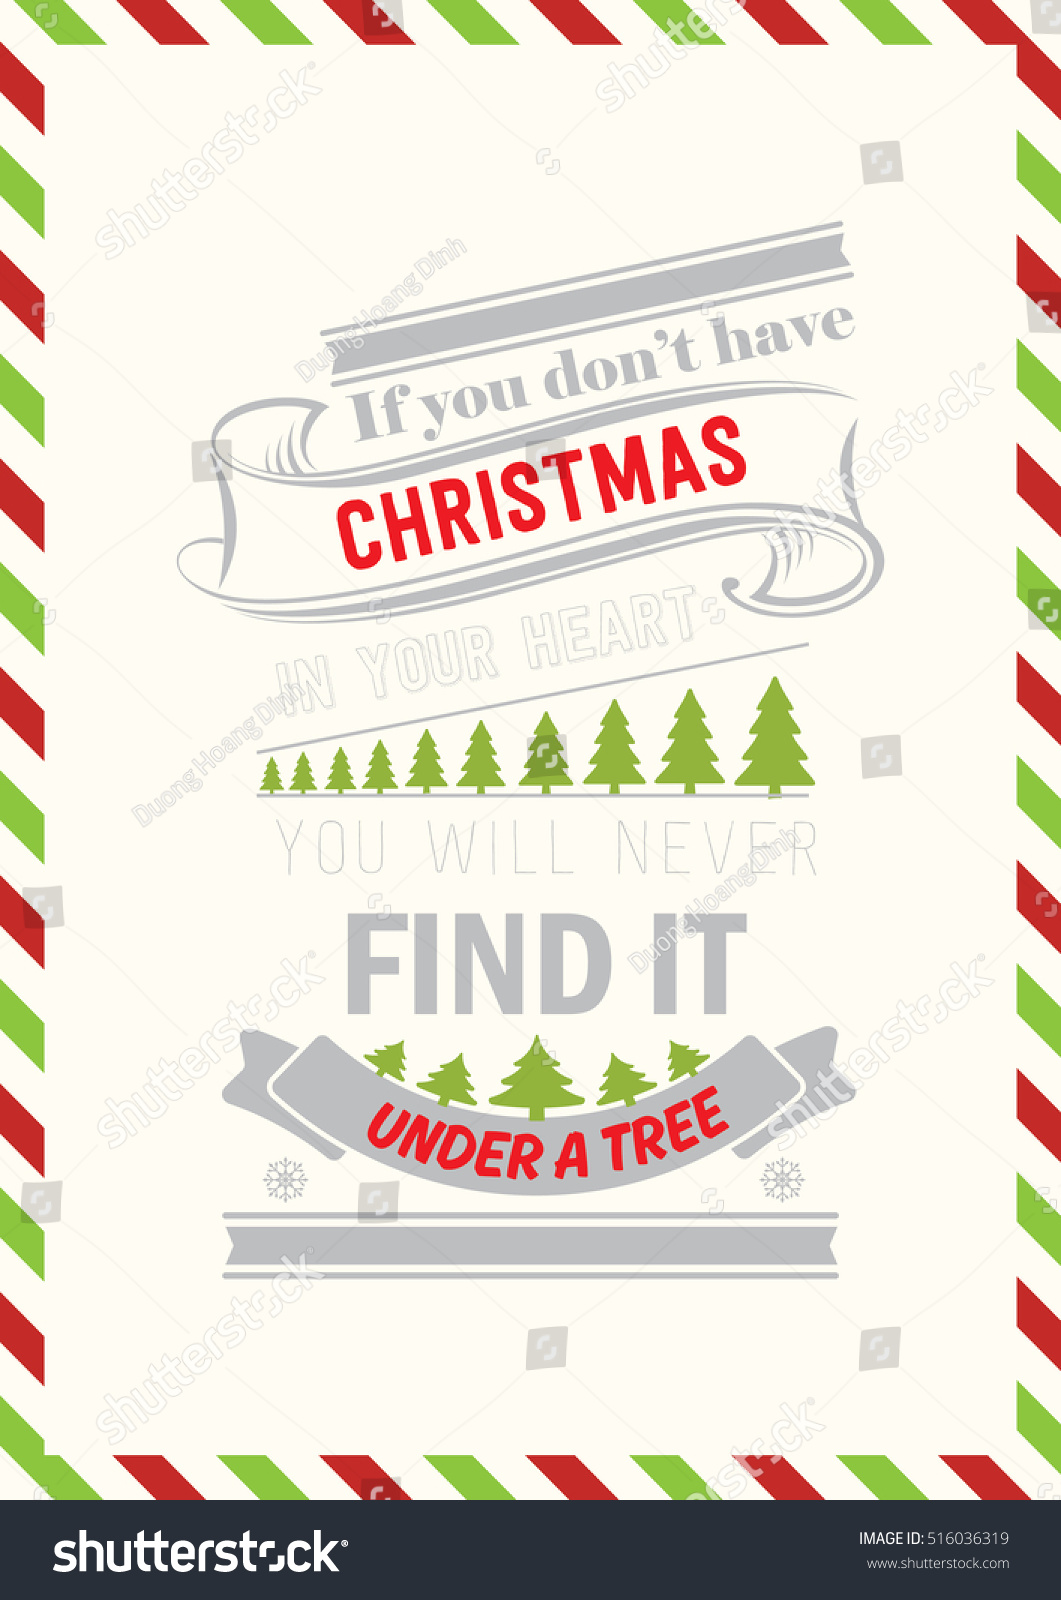 Christmas Quote. If You Don'T Have Christmas In Your Heart, You Will Never Find It Under A Tree ...